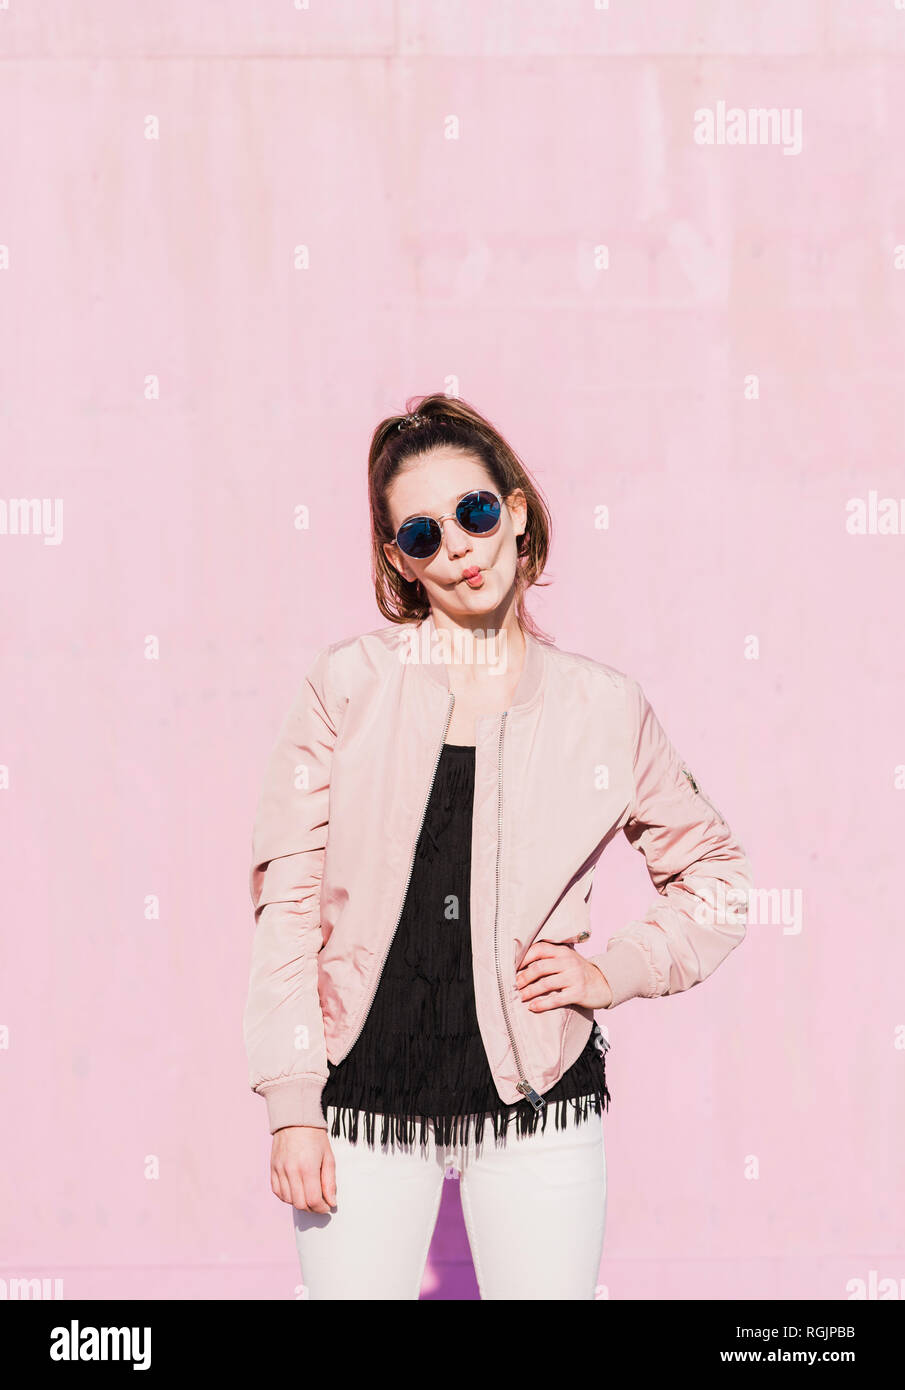 Portrait of young woman wearing sunglasses grimacing in front of pink wall - Stock Image